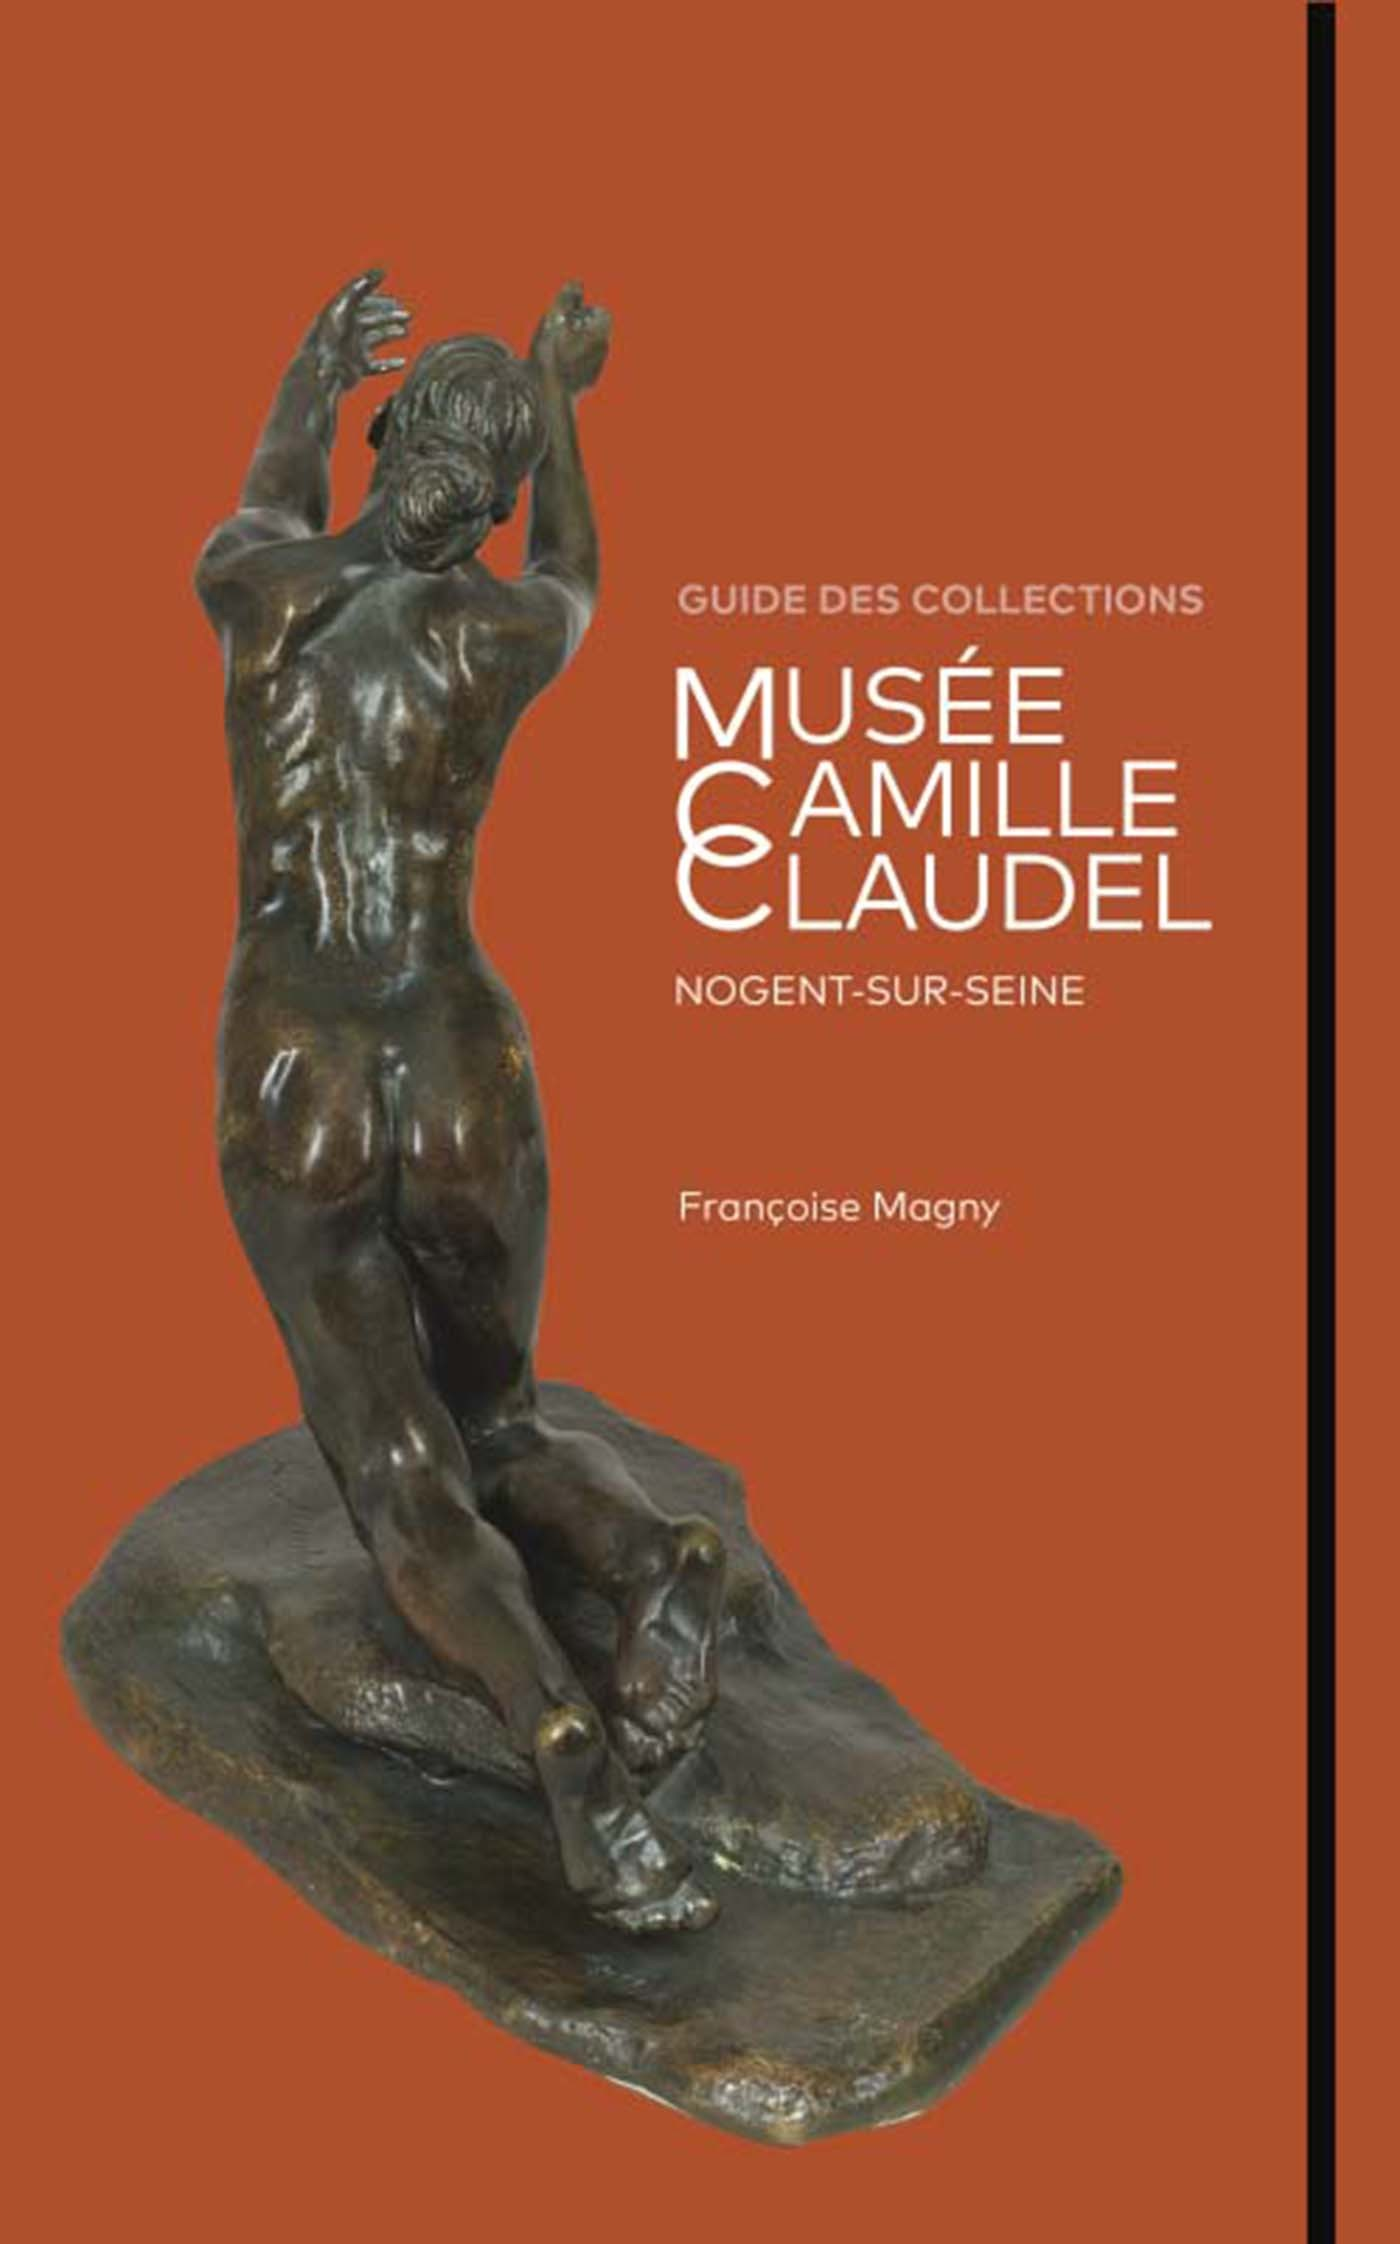 MUSEE CAMILLE CLAUDEL GUIDE DES COLLECTIONS